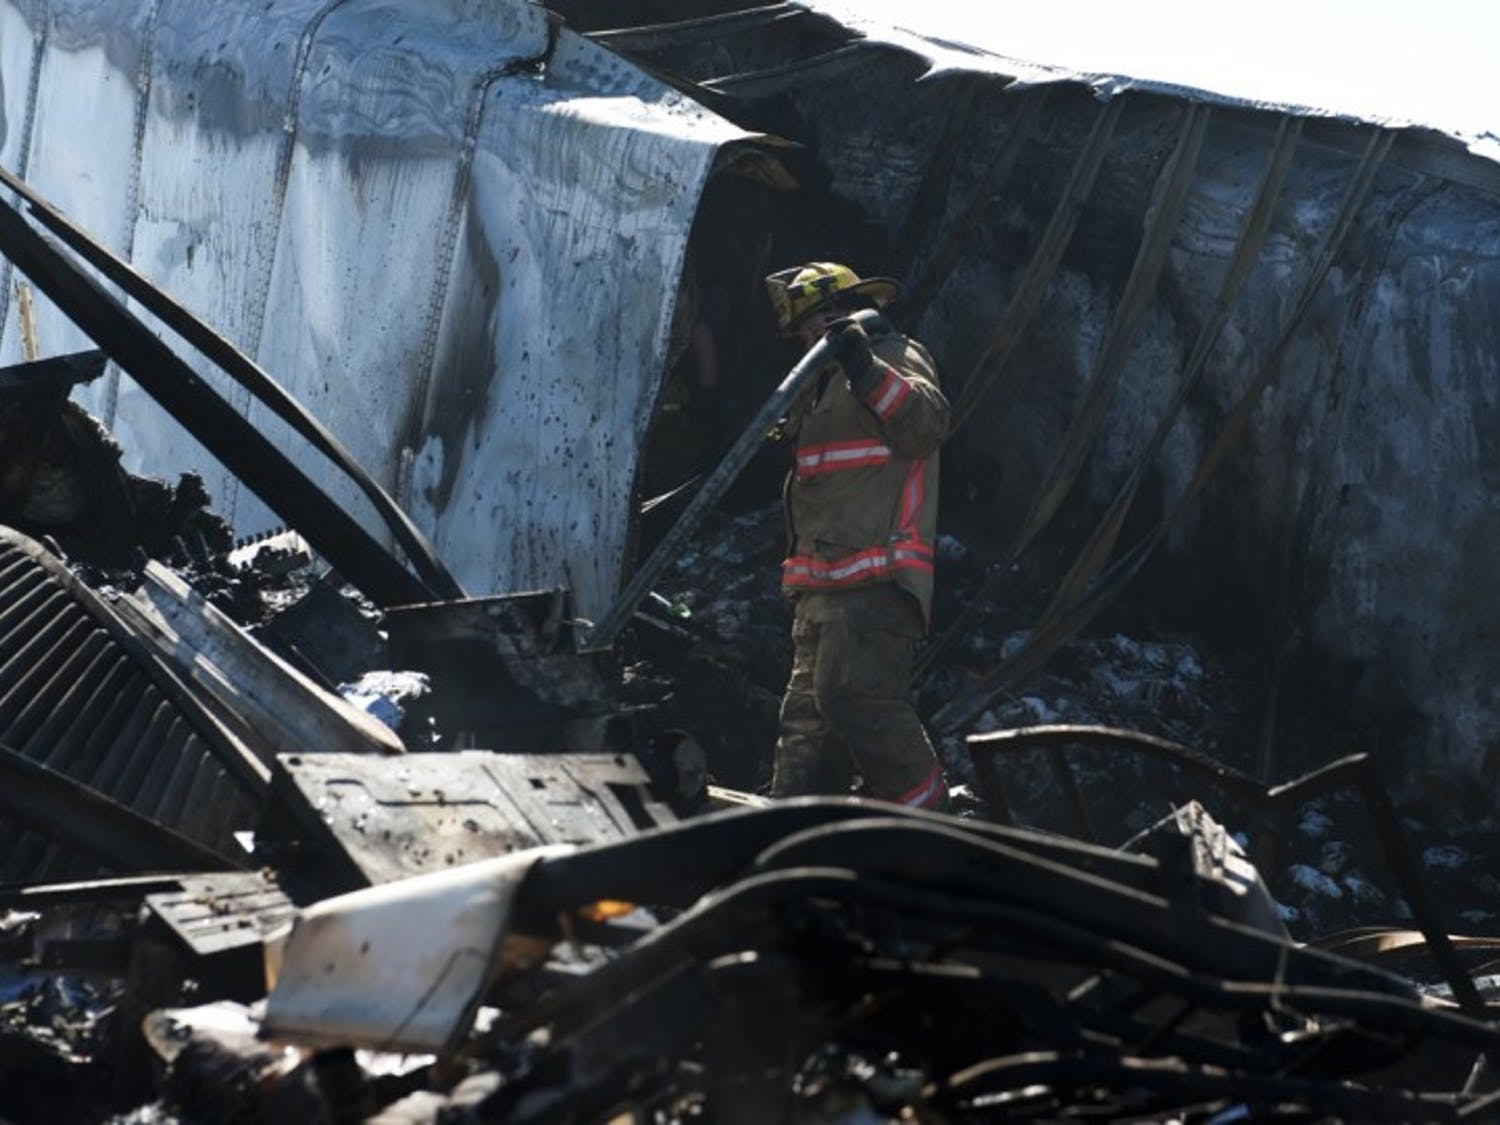 An Alachua County Fire Rescue Worker carries a hose through the wreckage of a semitrailer involved the southbound accident on Interstate 75 Sunday afternoon. The north and southbound accident claimed a total of 10 lives.